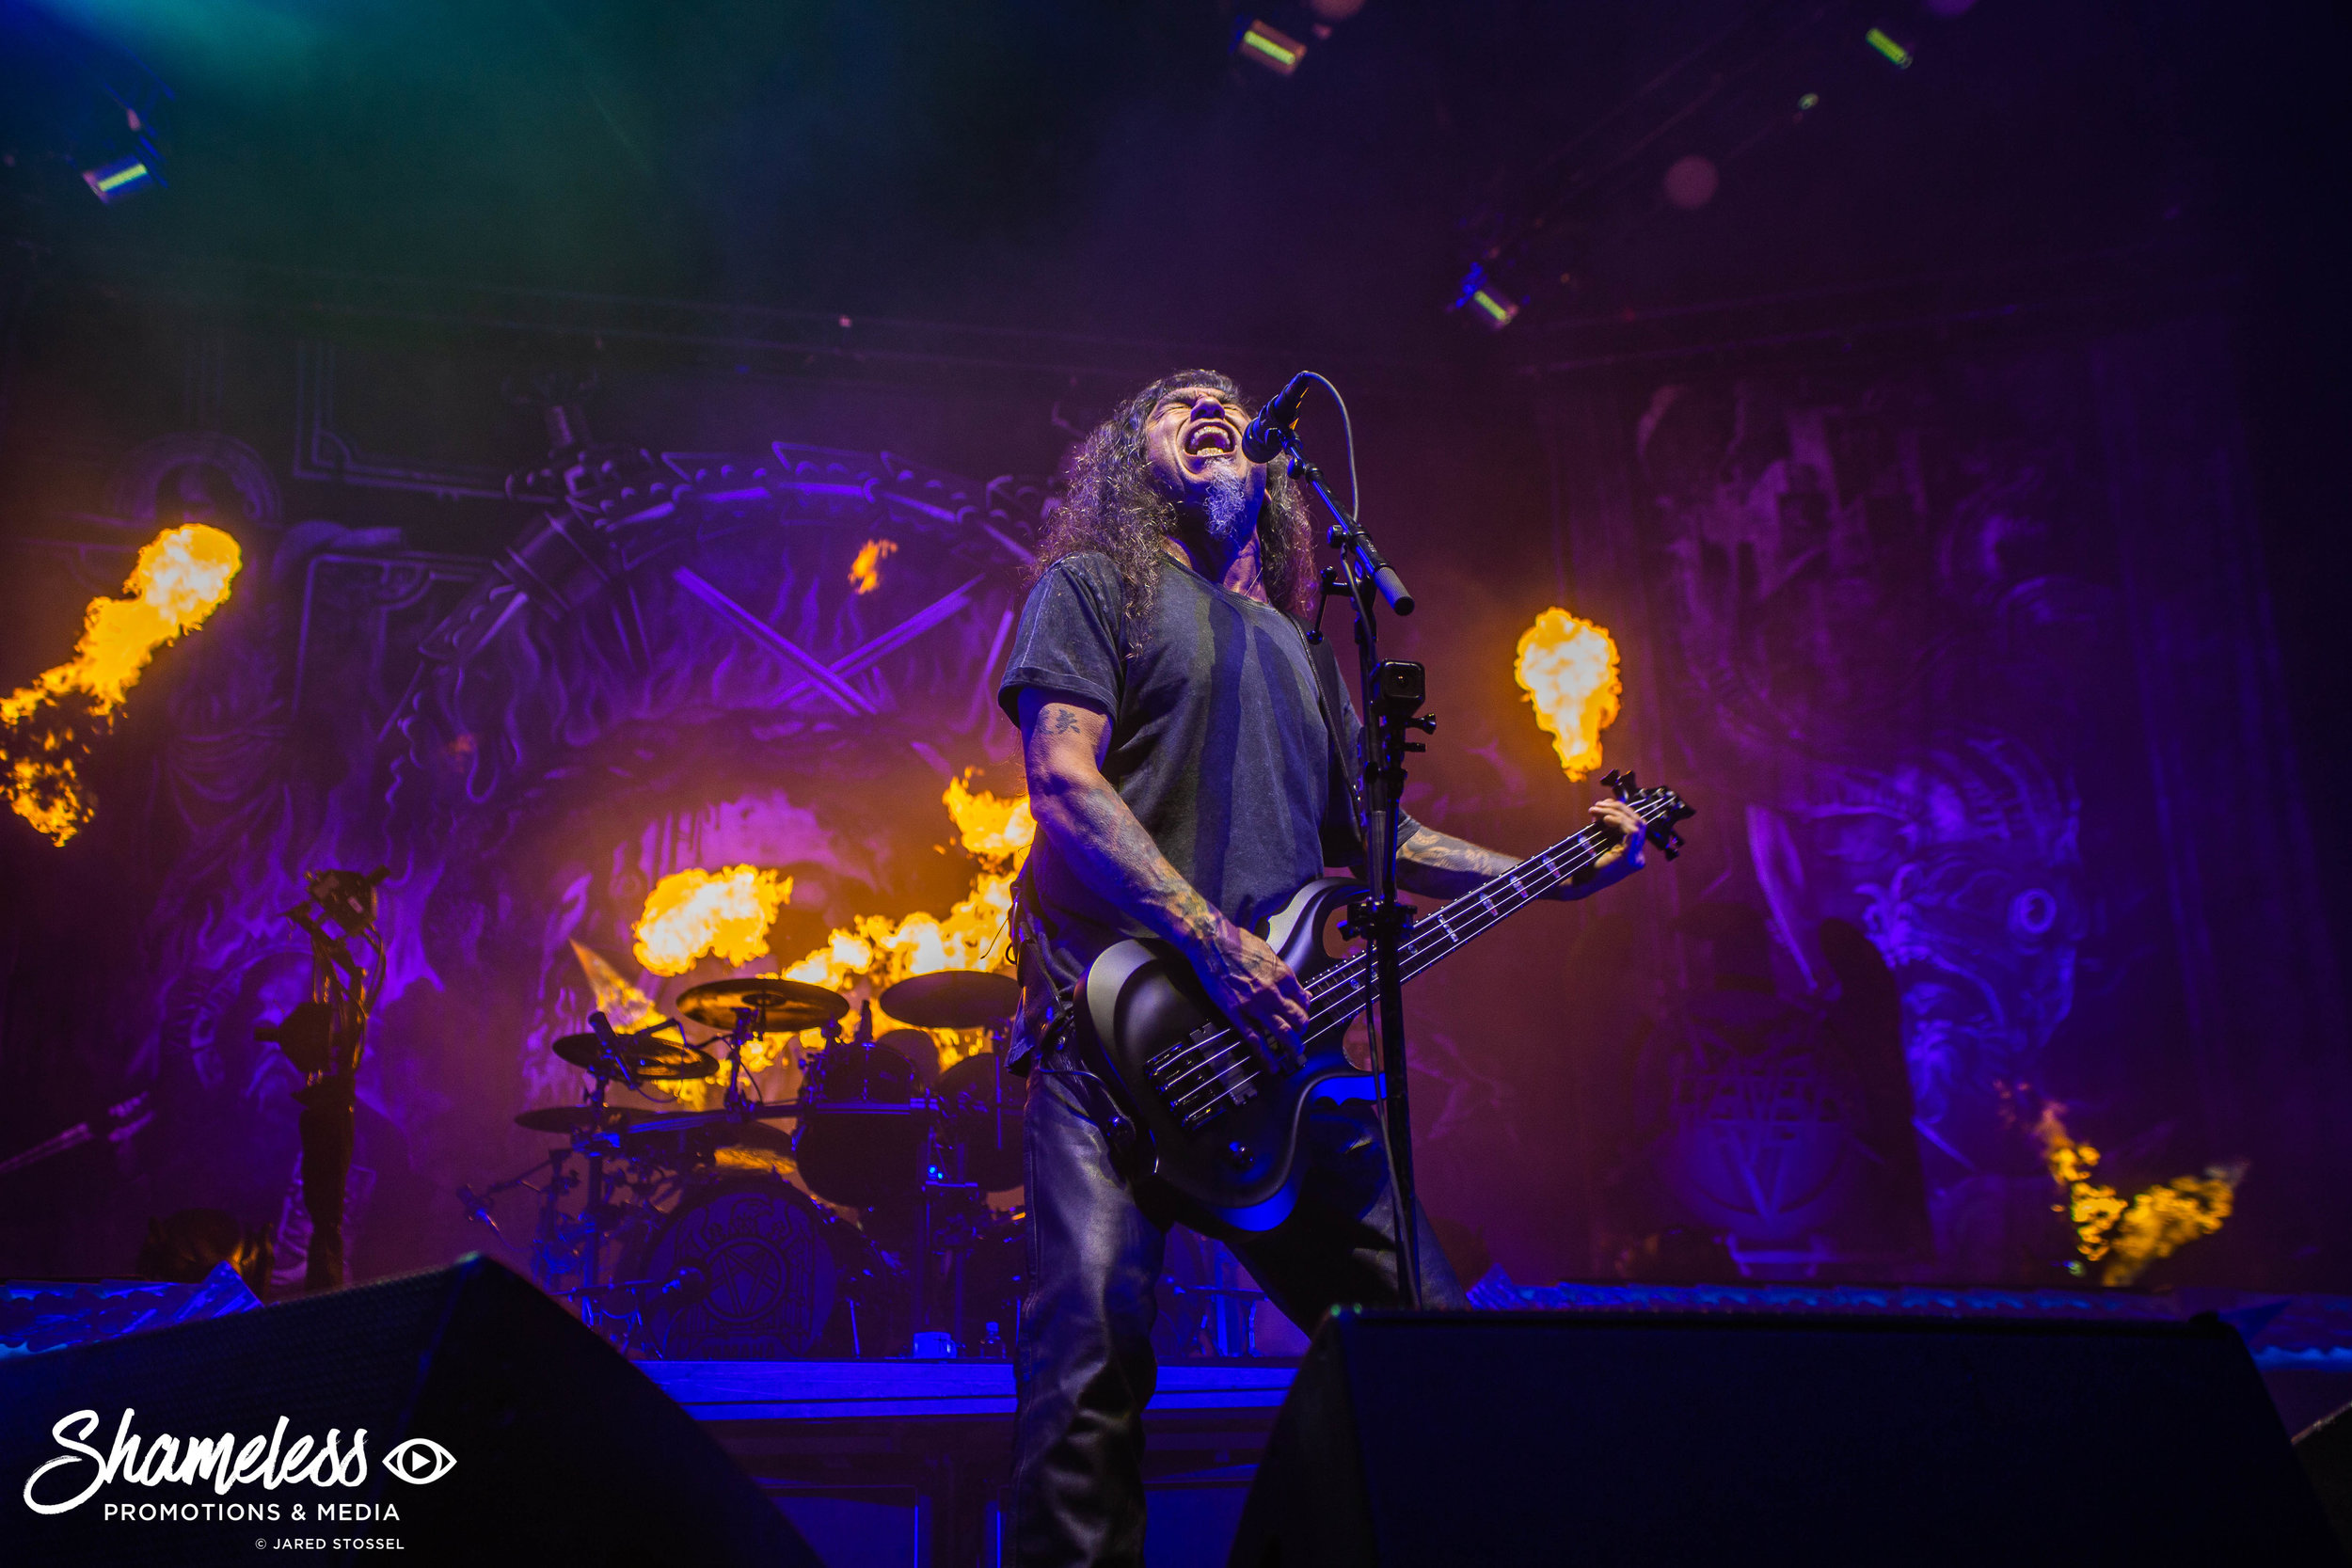 Tom Araya of Slayer performing at their final North American show at SAP Center in San Jose, CA. August 26, 2018. Photo Credit: Jared Stossel